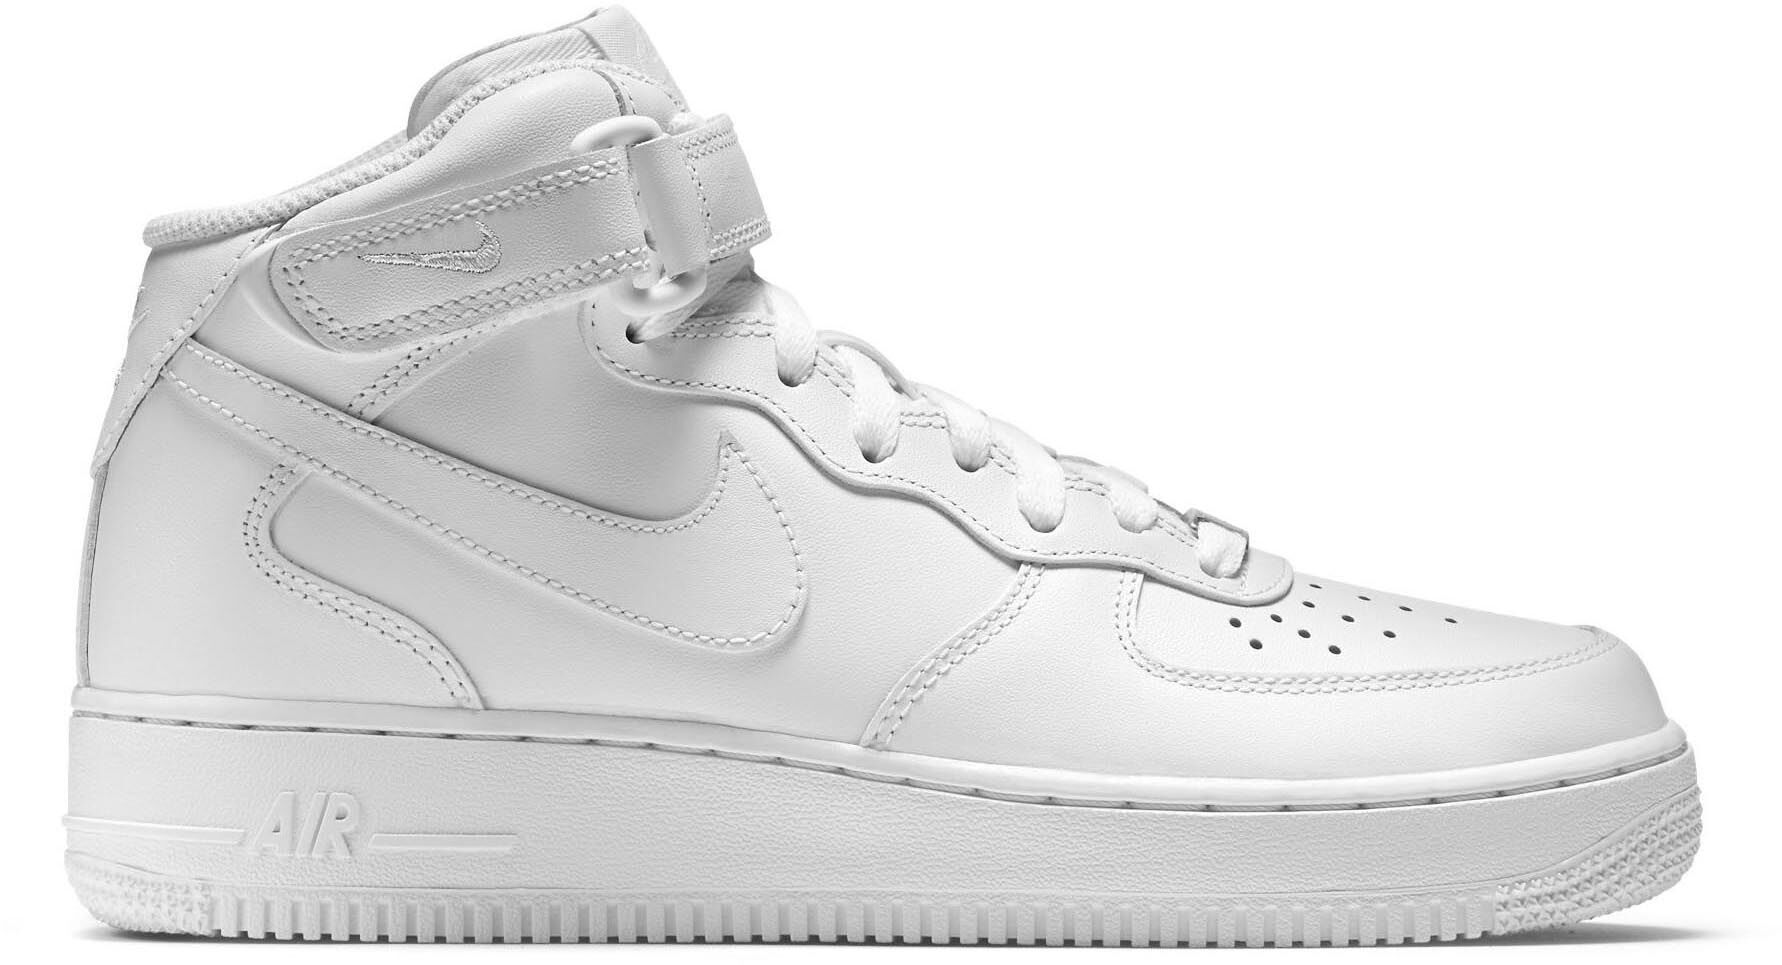 Sneakers for Dames | The Athletes Foot